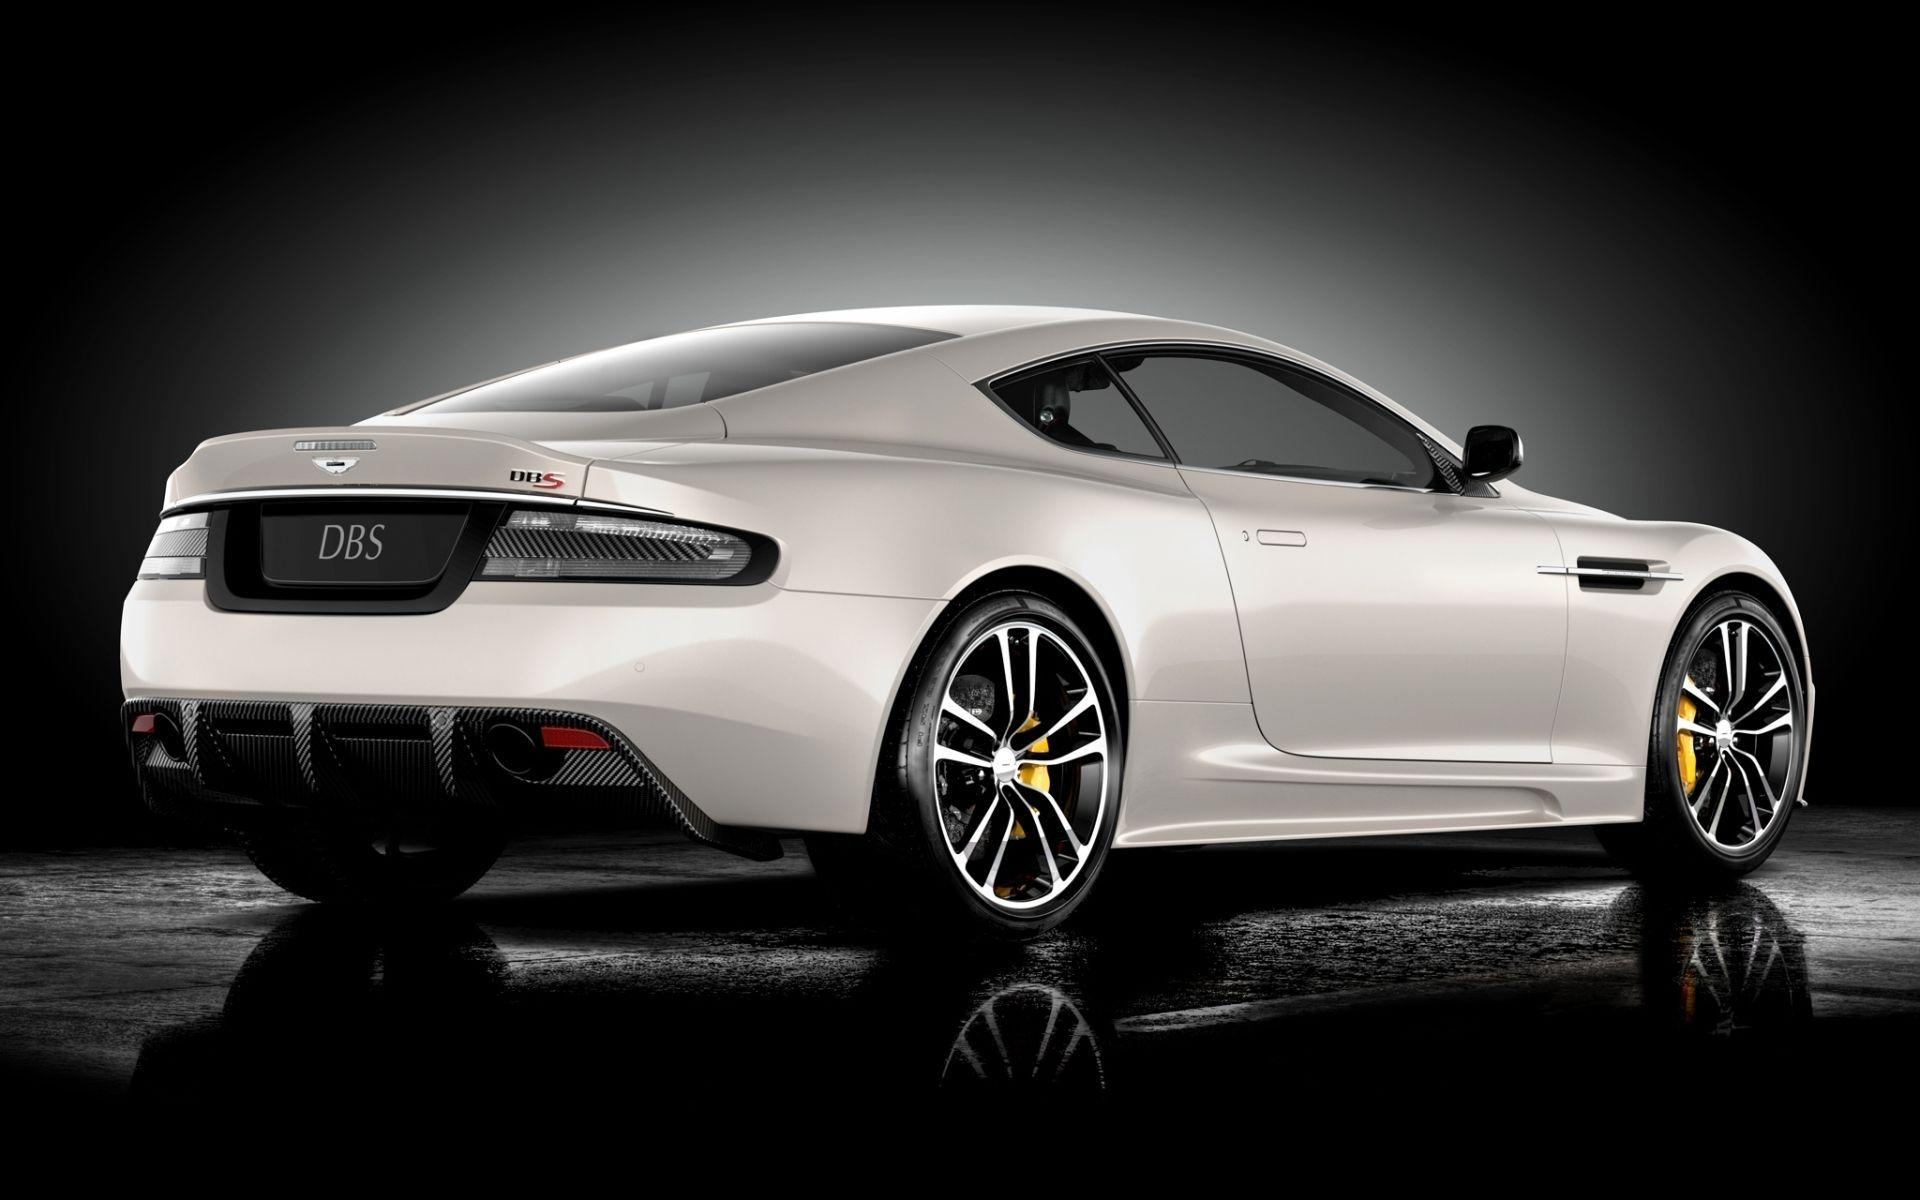 Wallpapers For > Aston Martin Dbs Wallpapers